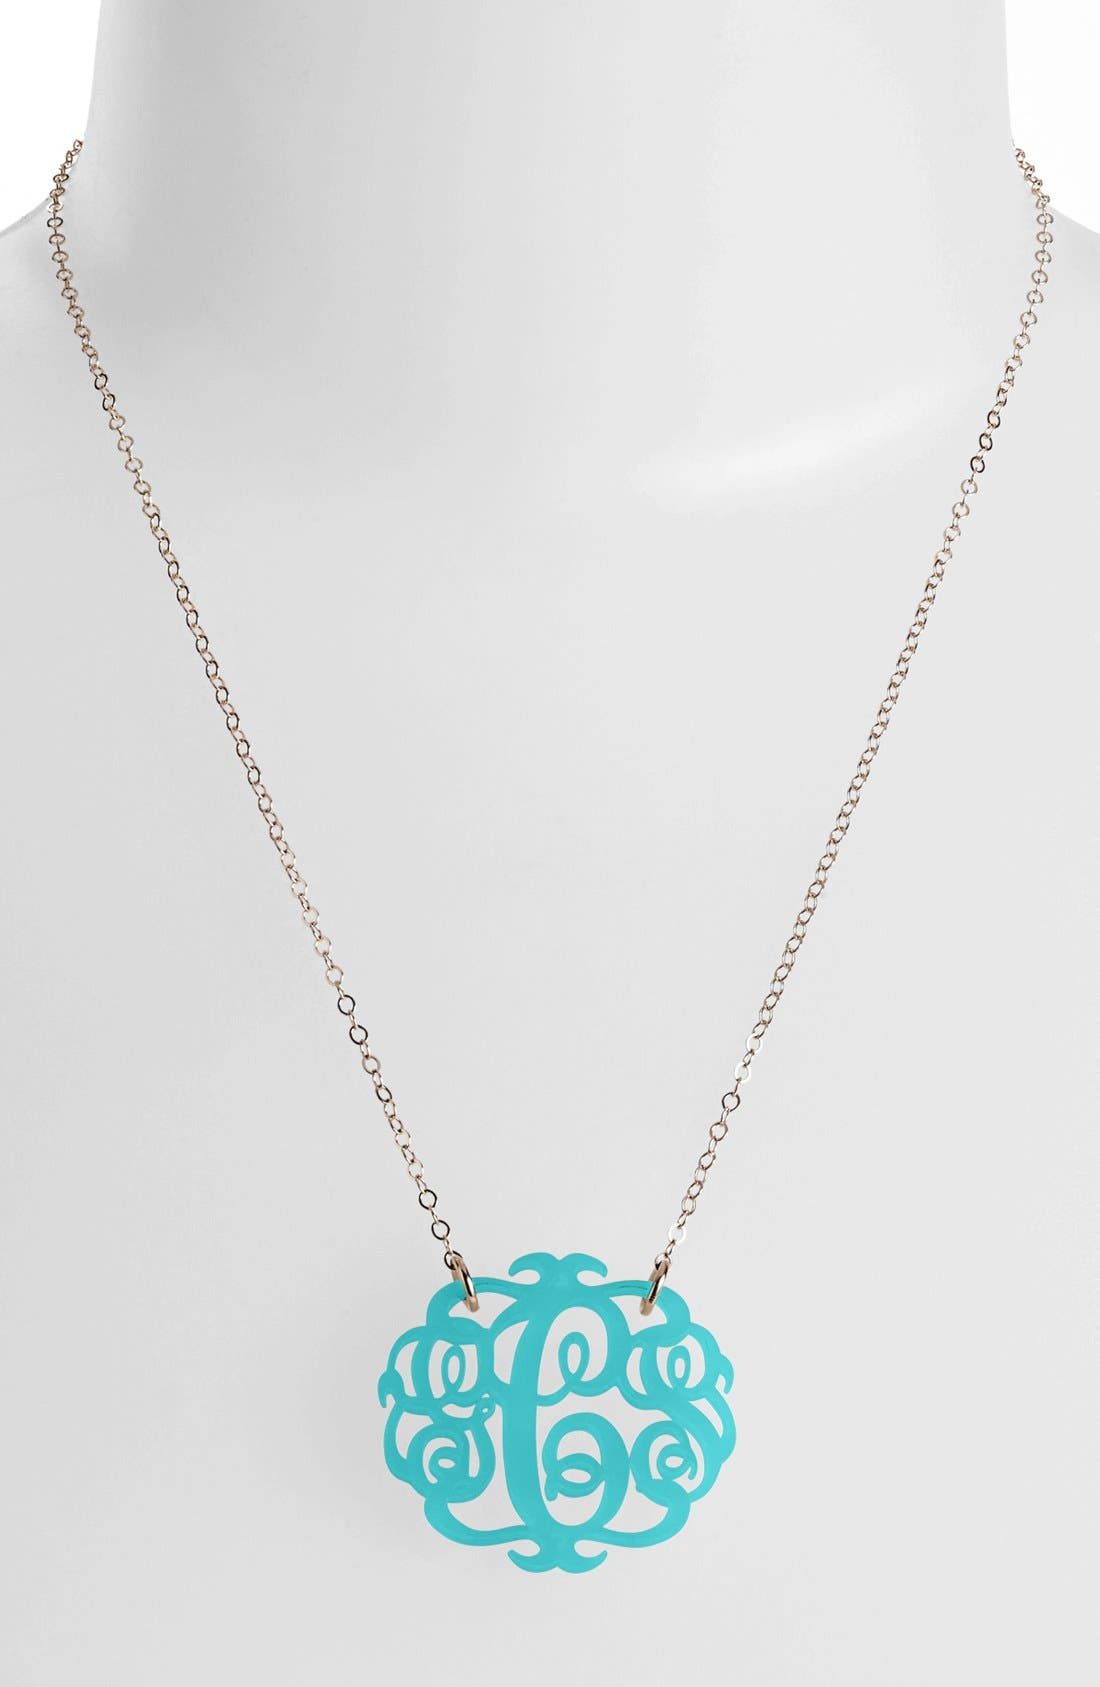 Alternate Image 1 Selected - Moon and Lola Medium Oval Personalized Monogram Pendant Necklace (Nordstrom Exclusive)